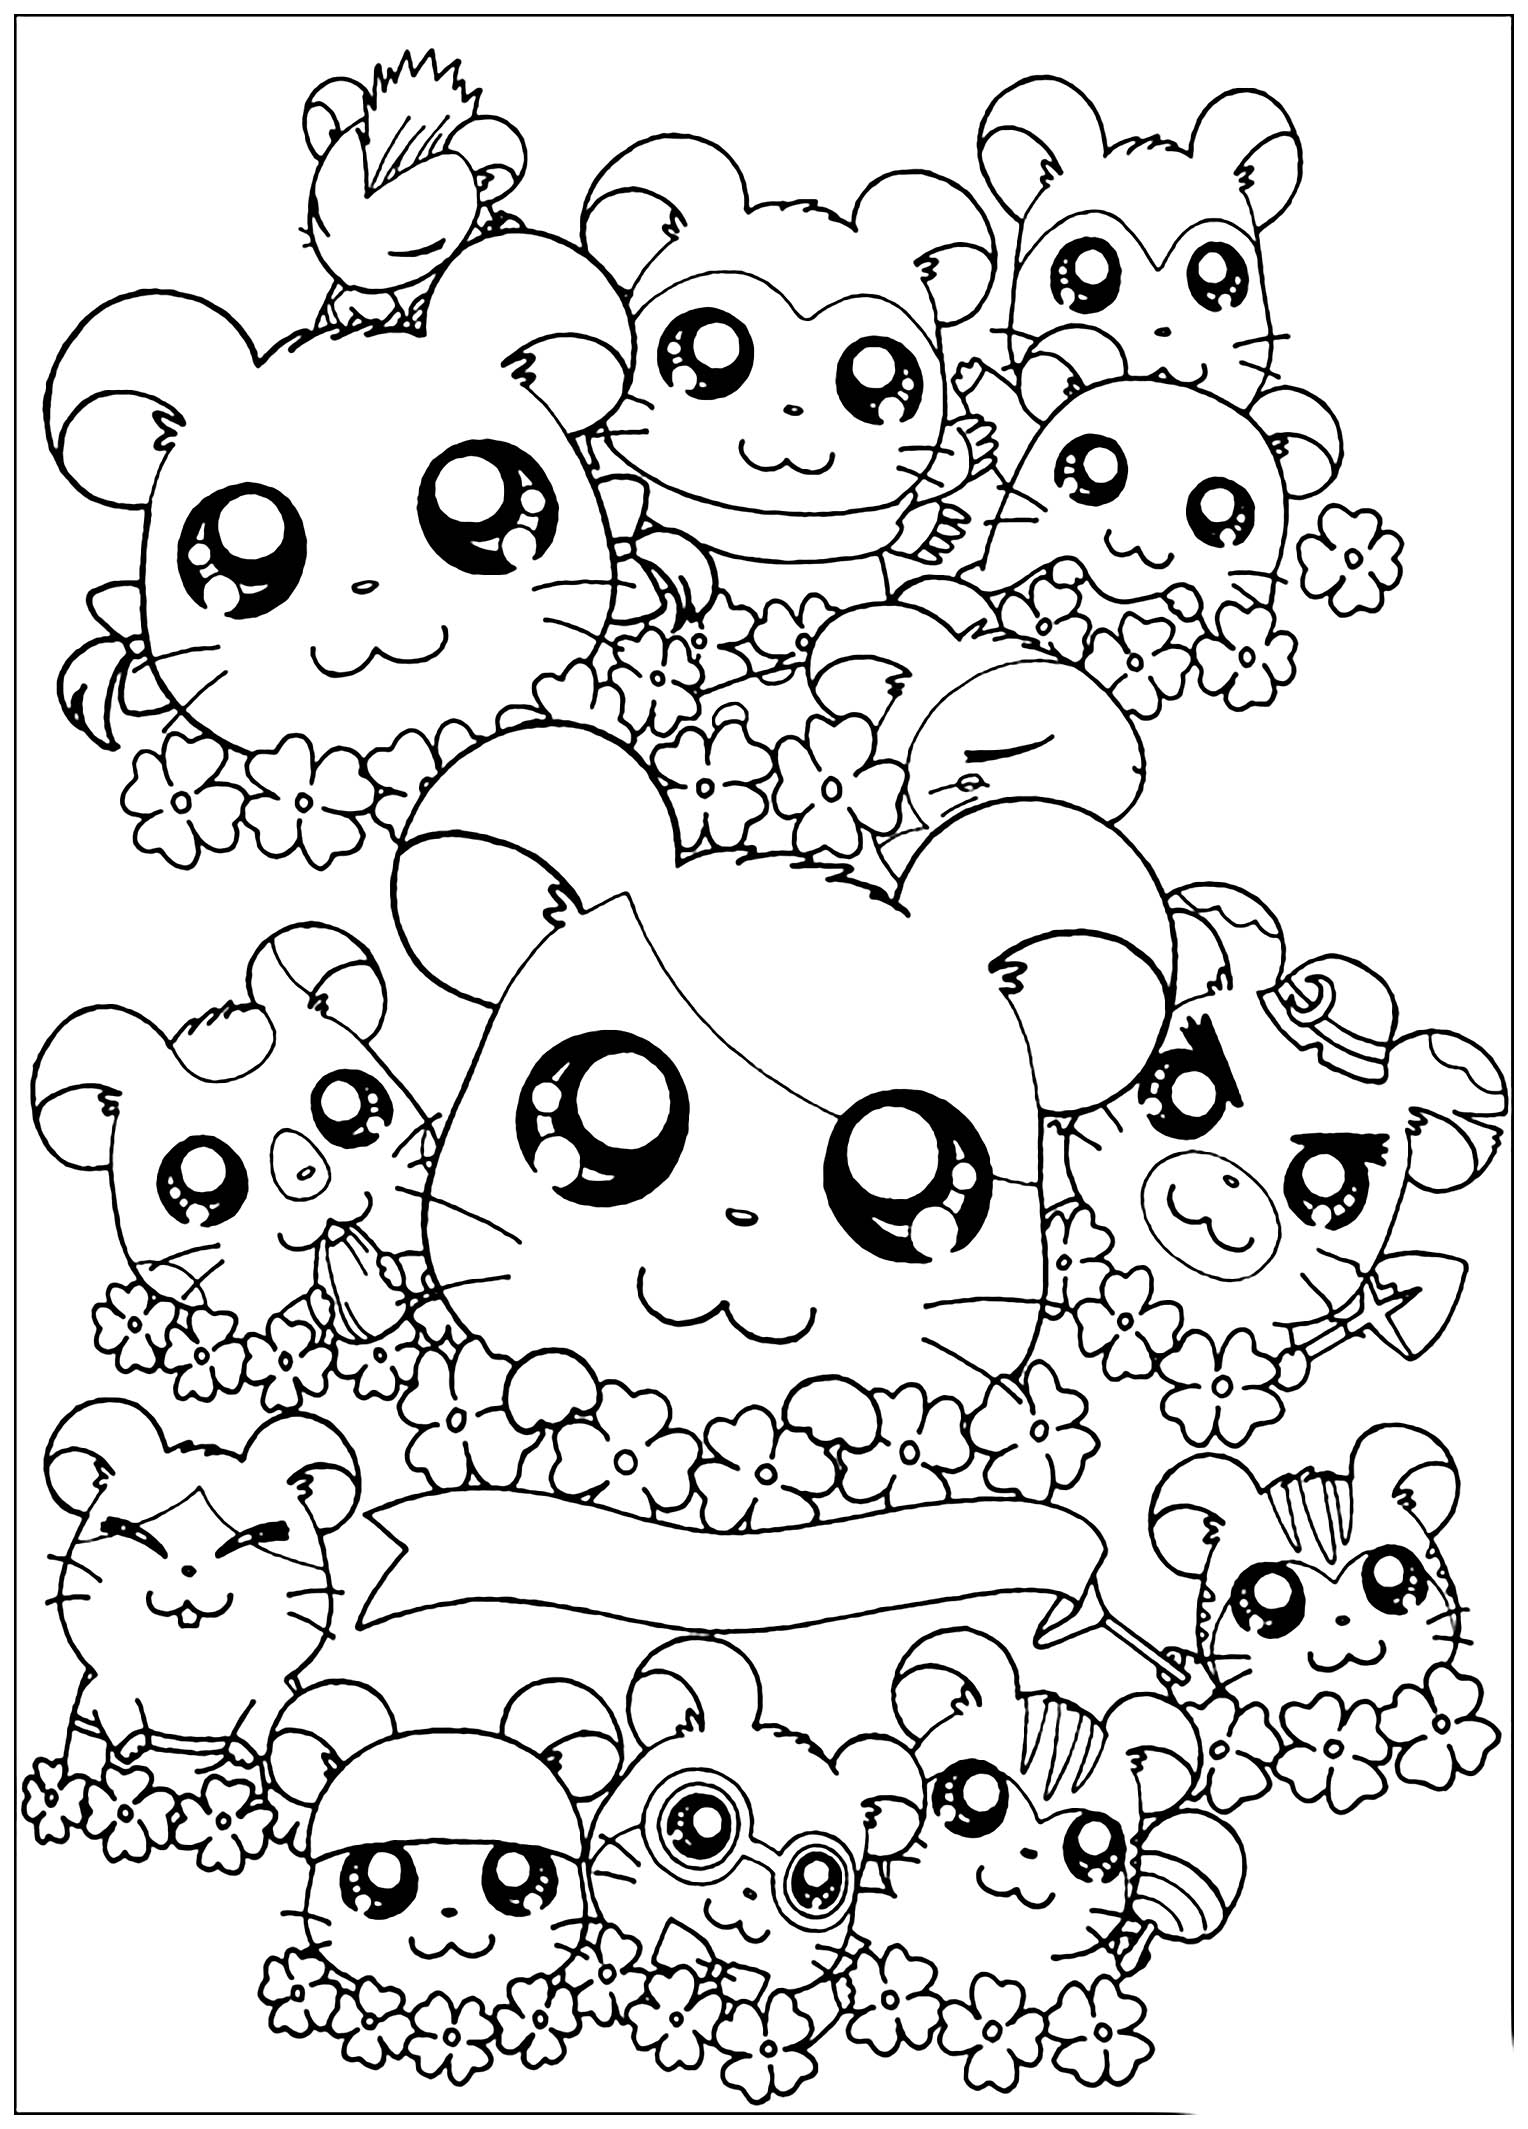 Coloriage Hamster Kawaii.Colorage Hamtoro Coloriage Kawaii Coloriages Pour Enfants